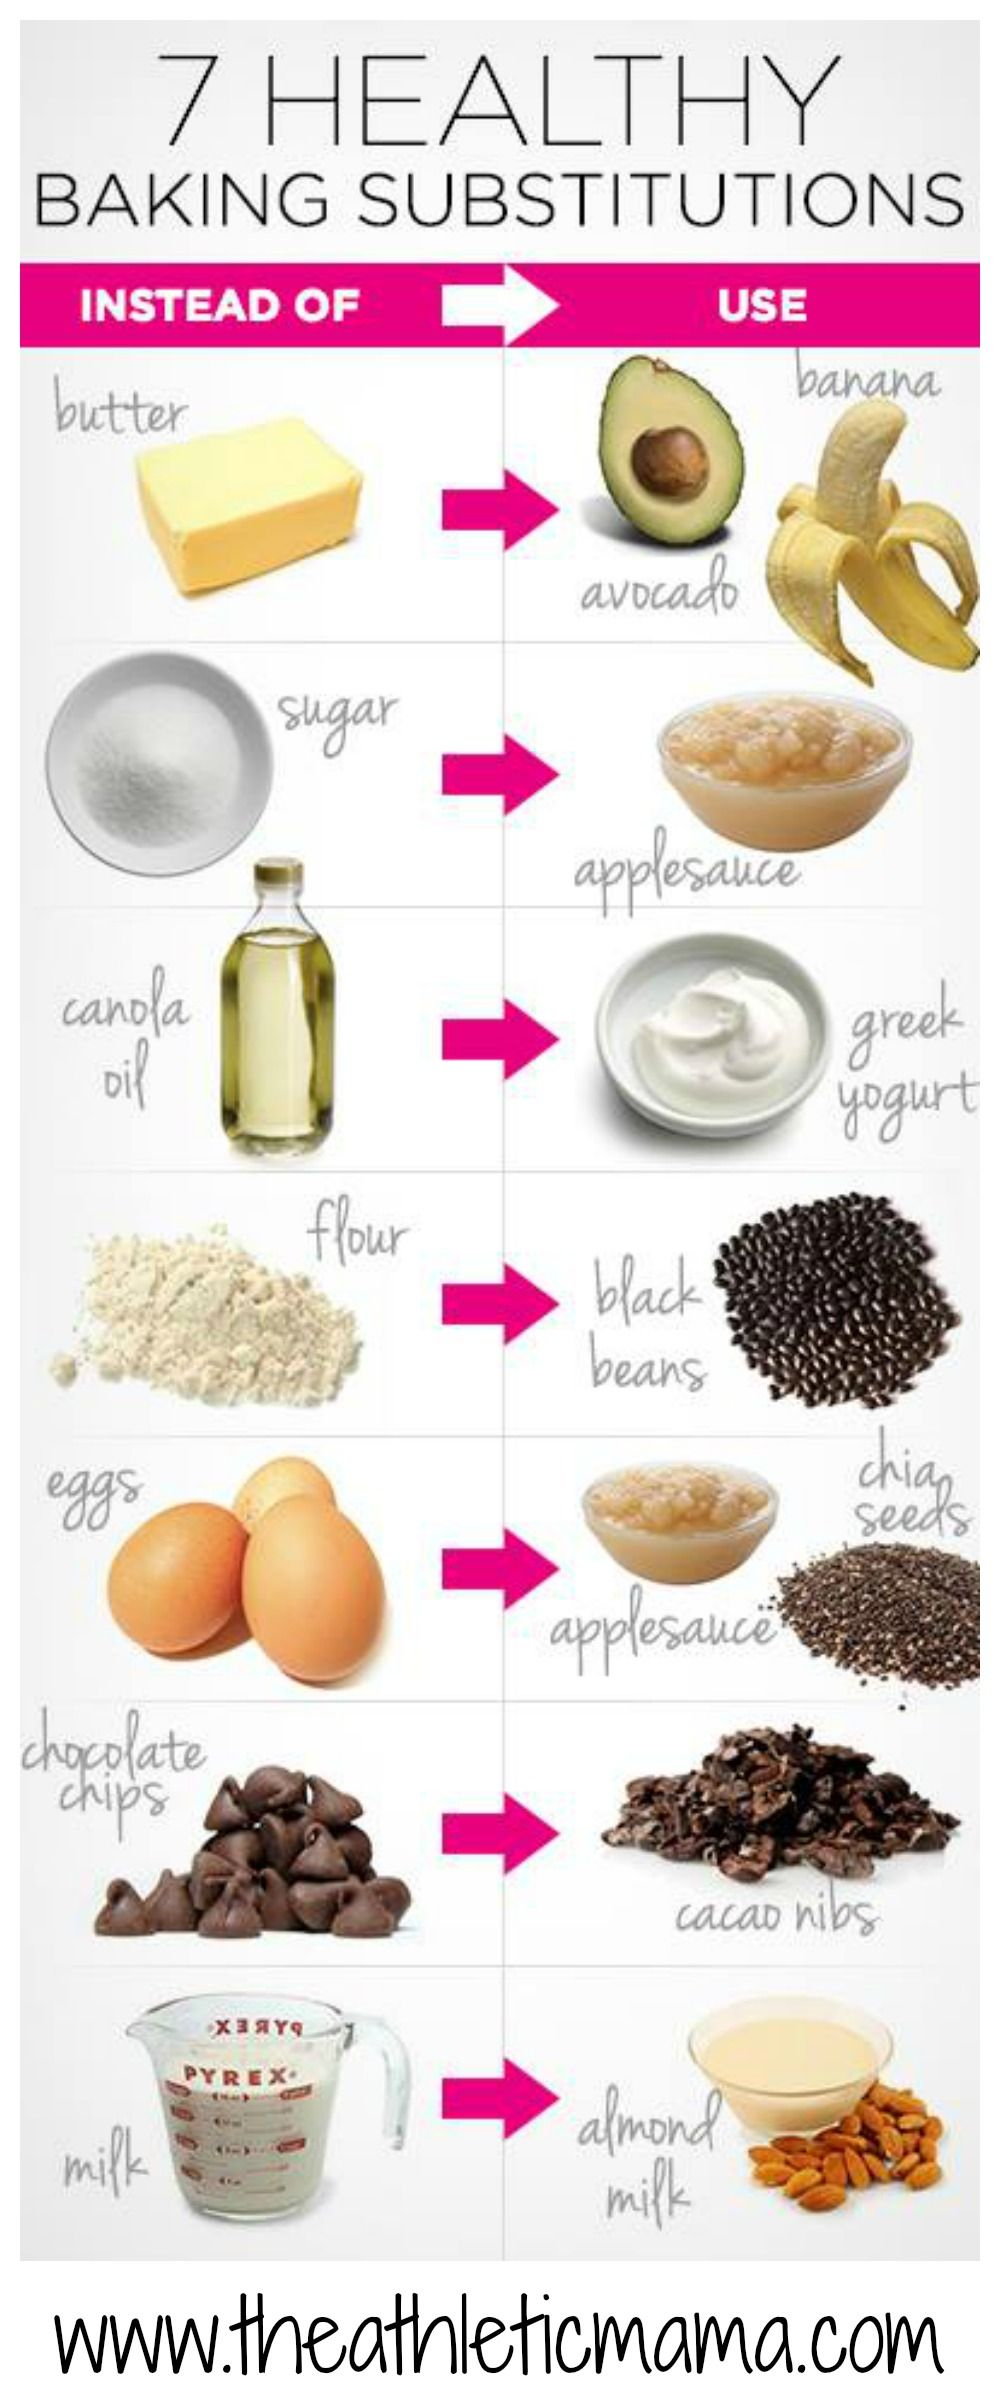 Food and Drink Substitutions for a Healthy Lifestyle Food and Drink Substitutions for a Healthy Lifestyle new foto